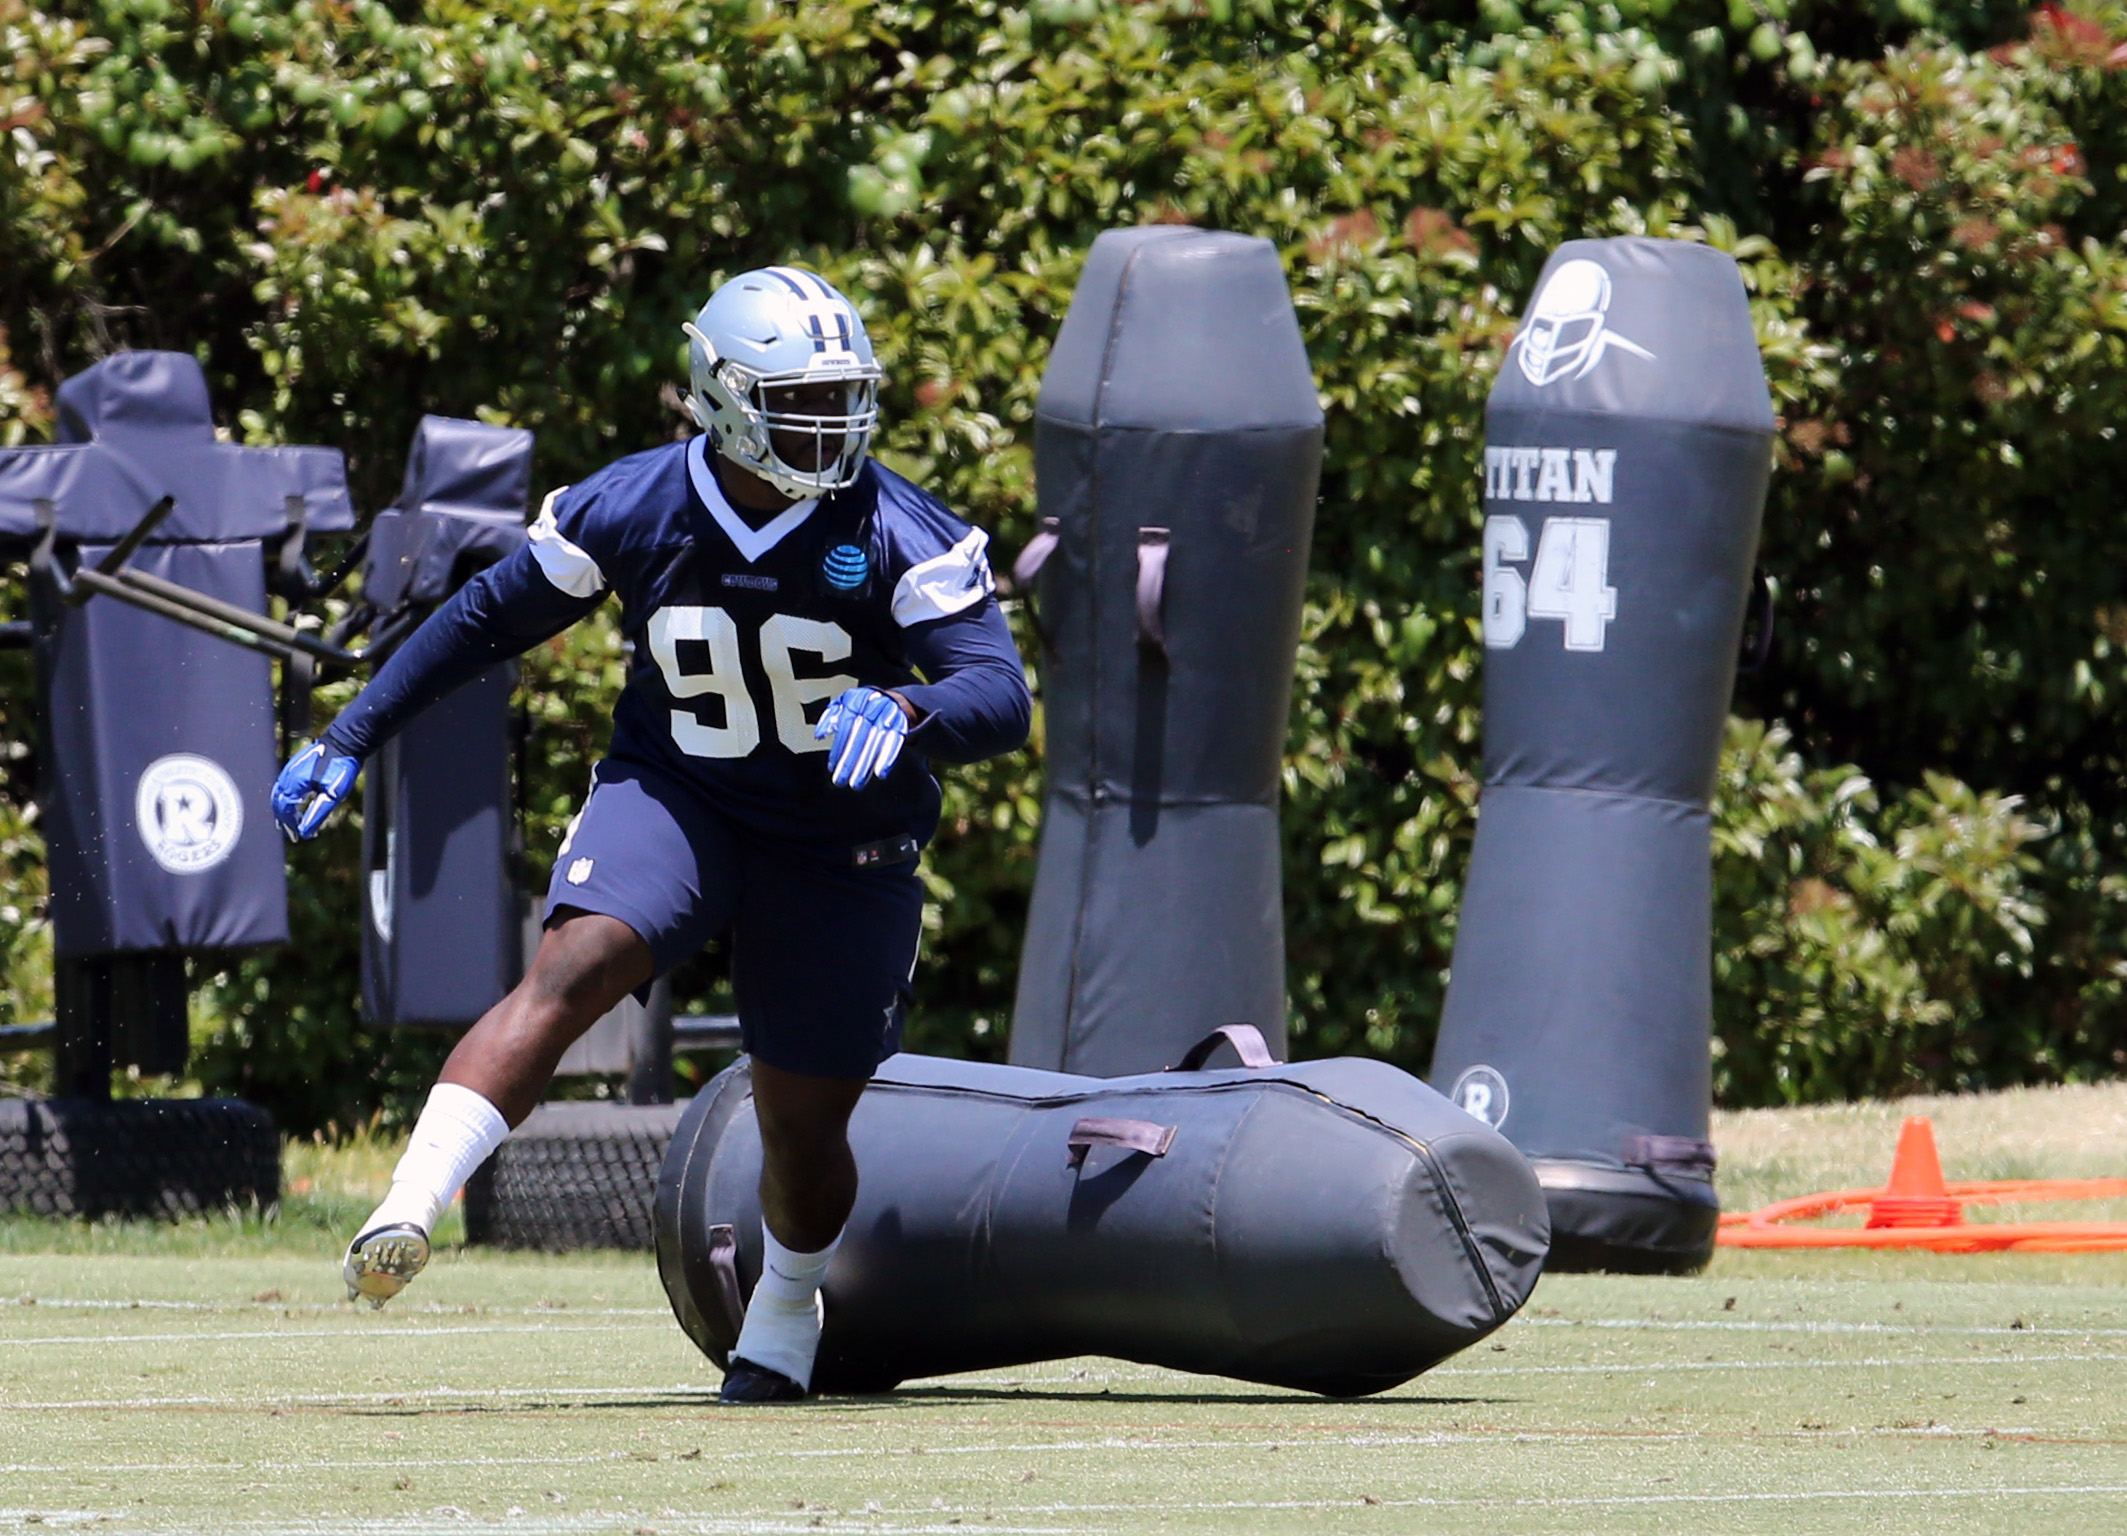 Rolling your ankle like this Cowboys rookie is a common way to get a Jones fracture